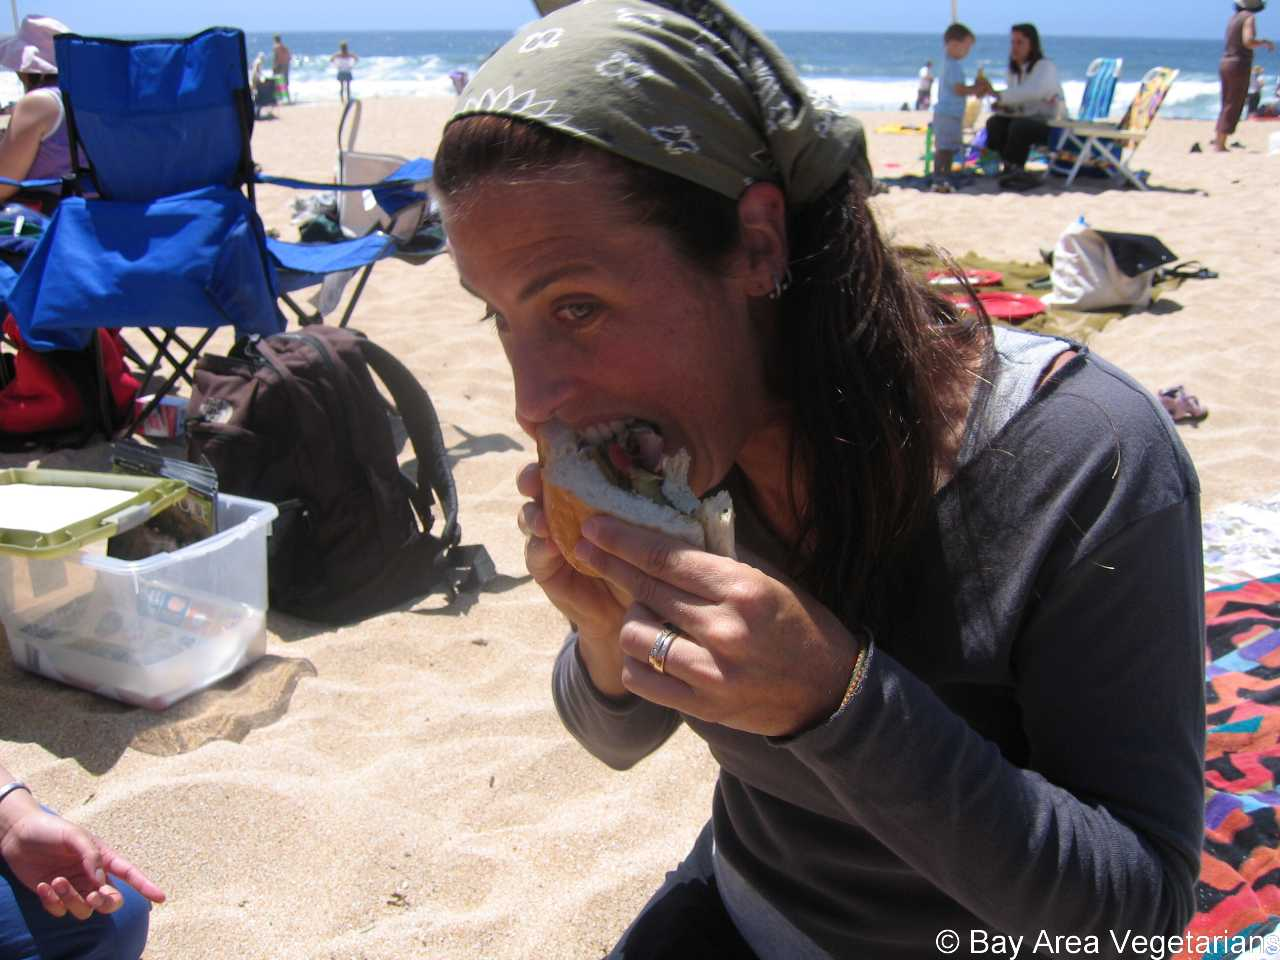 Sue and the Vegan Sandwich